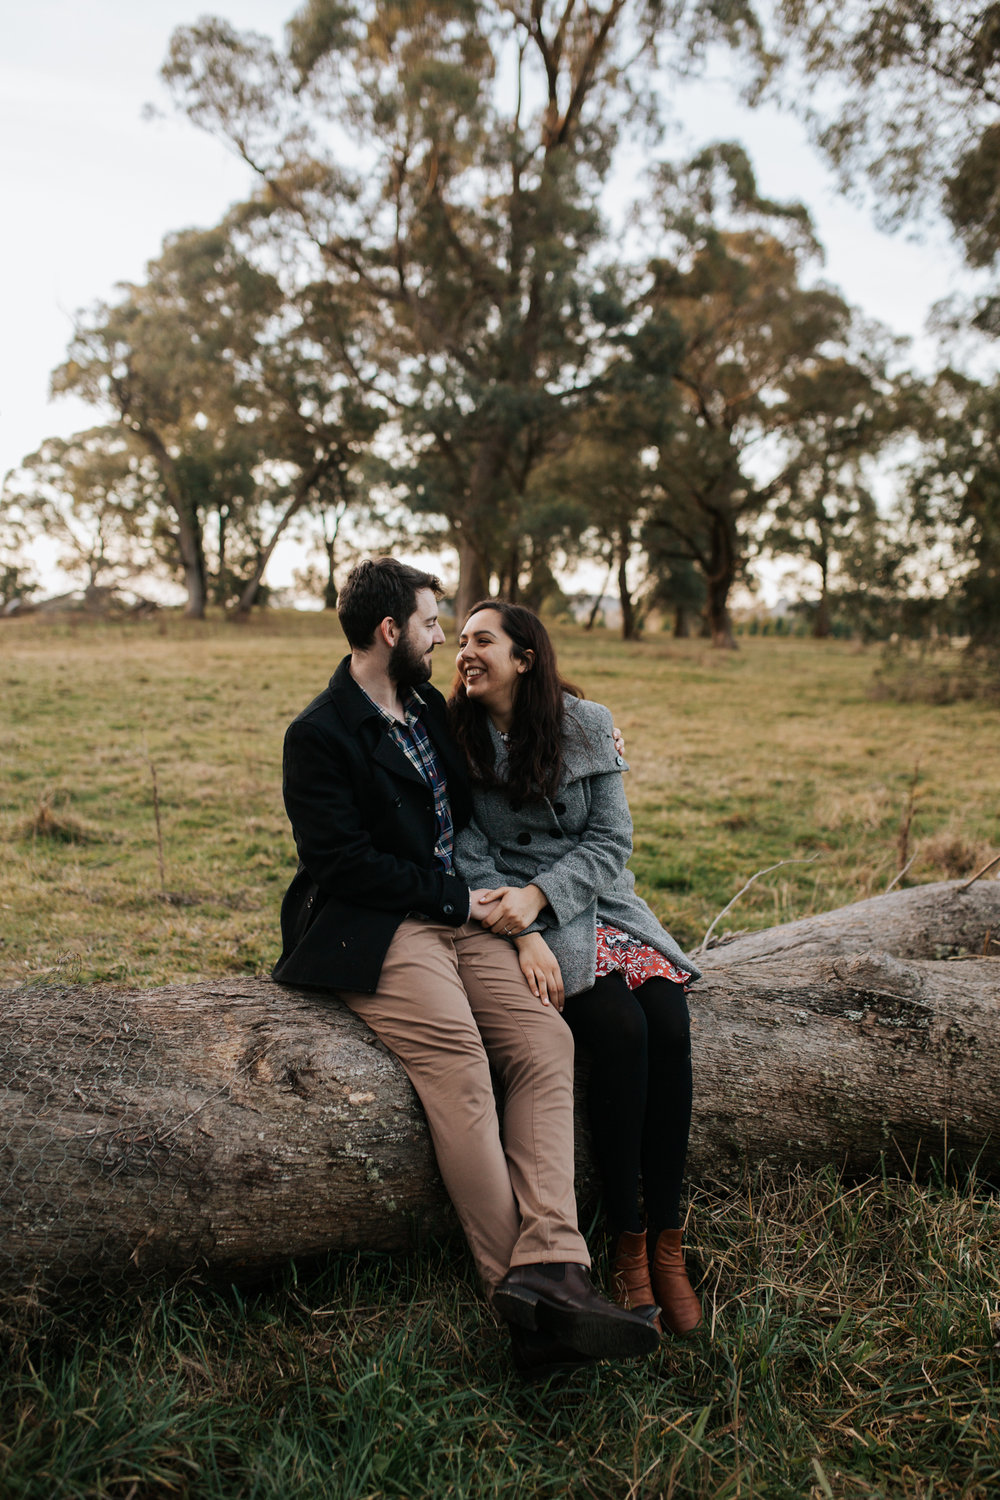 Kate & Kieran - Southern Highlands Engagement - Samantha Heather Photography-67.jpg